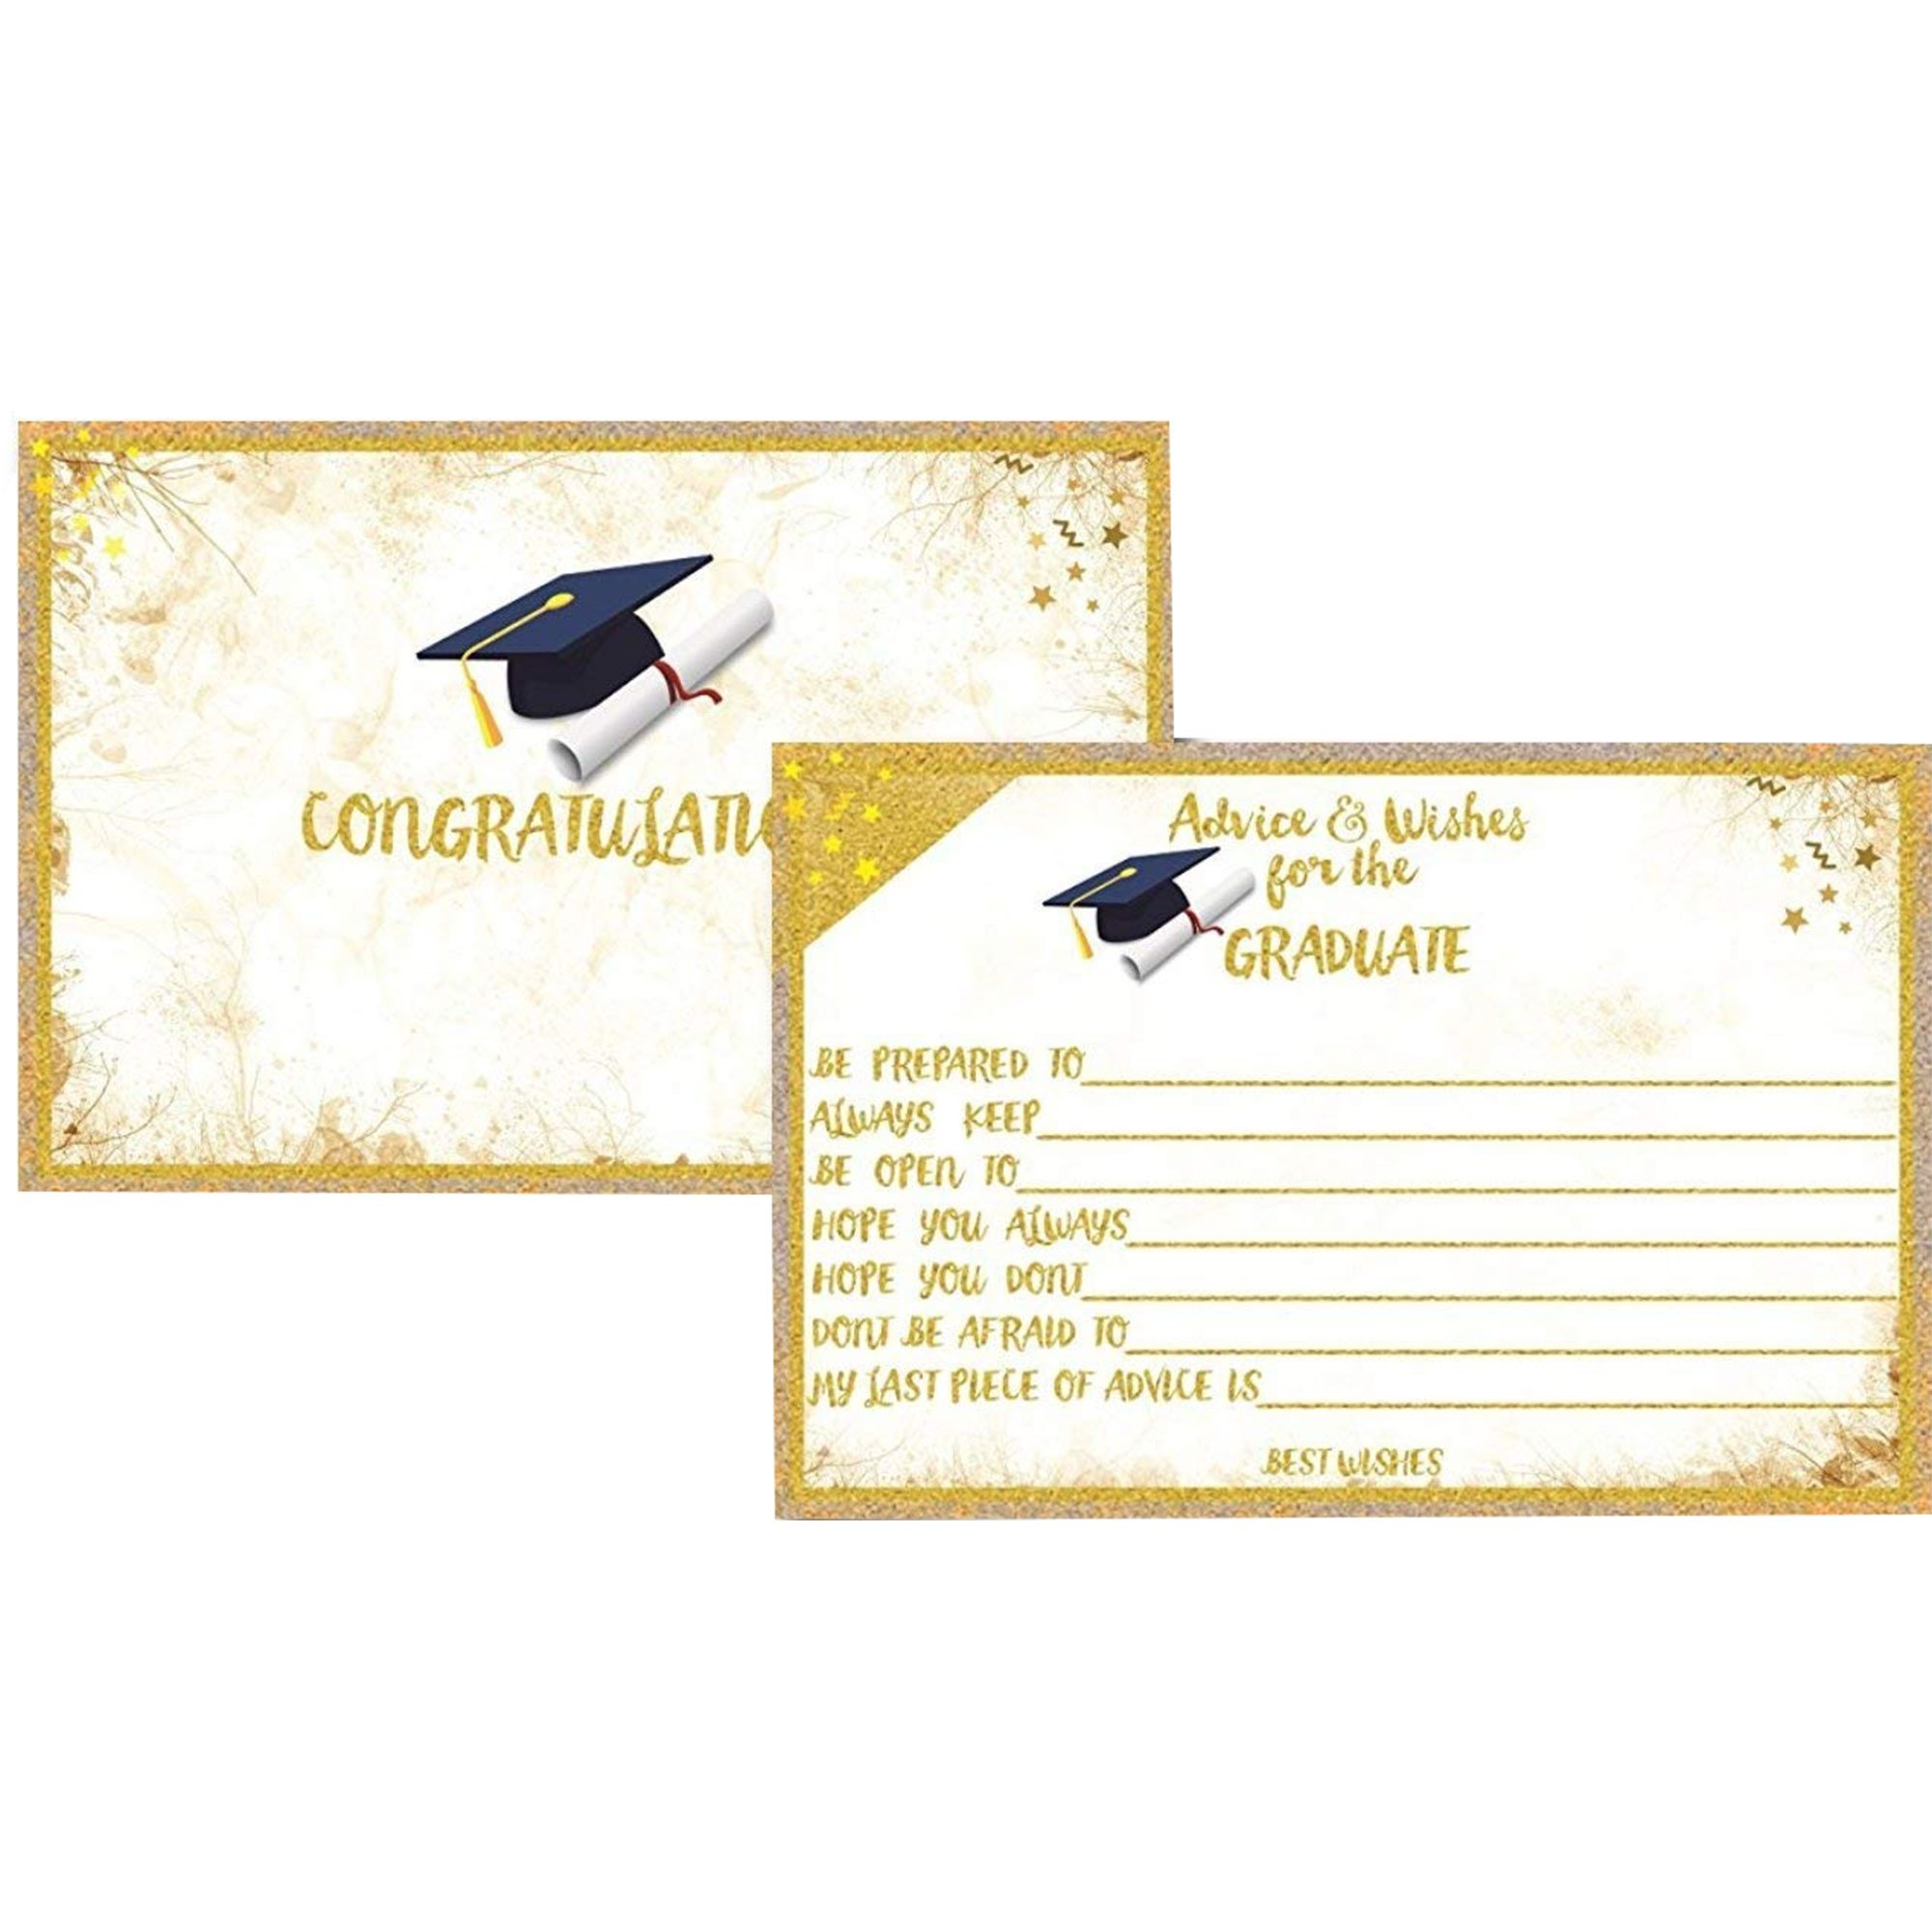 Graduation Cards   L&P Designs   Graduation Well Wishes and Advice Cards Graduation Well Wishes and Advice Cards, Printed on Matte and Gloss 50ct